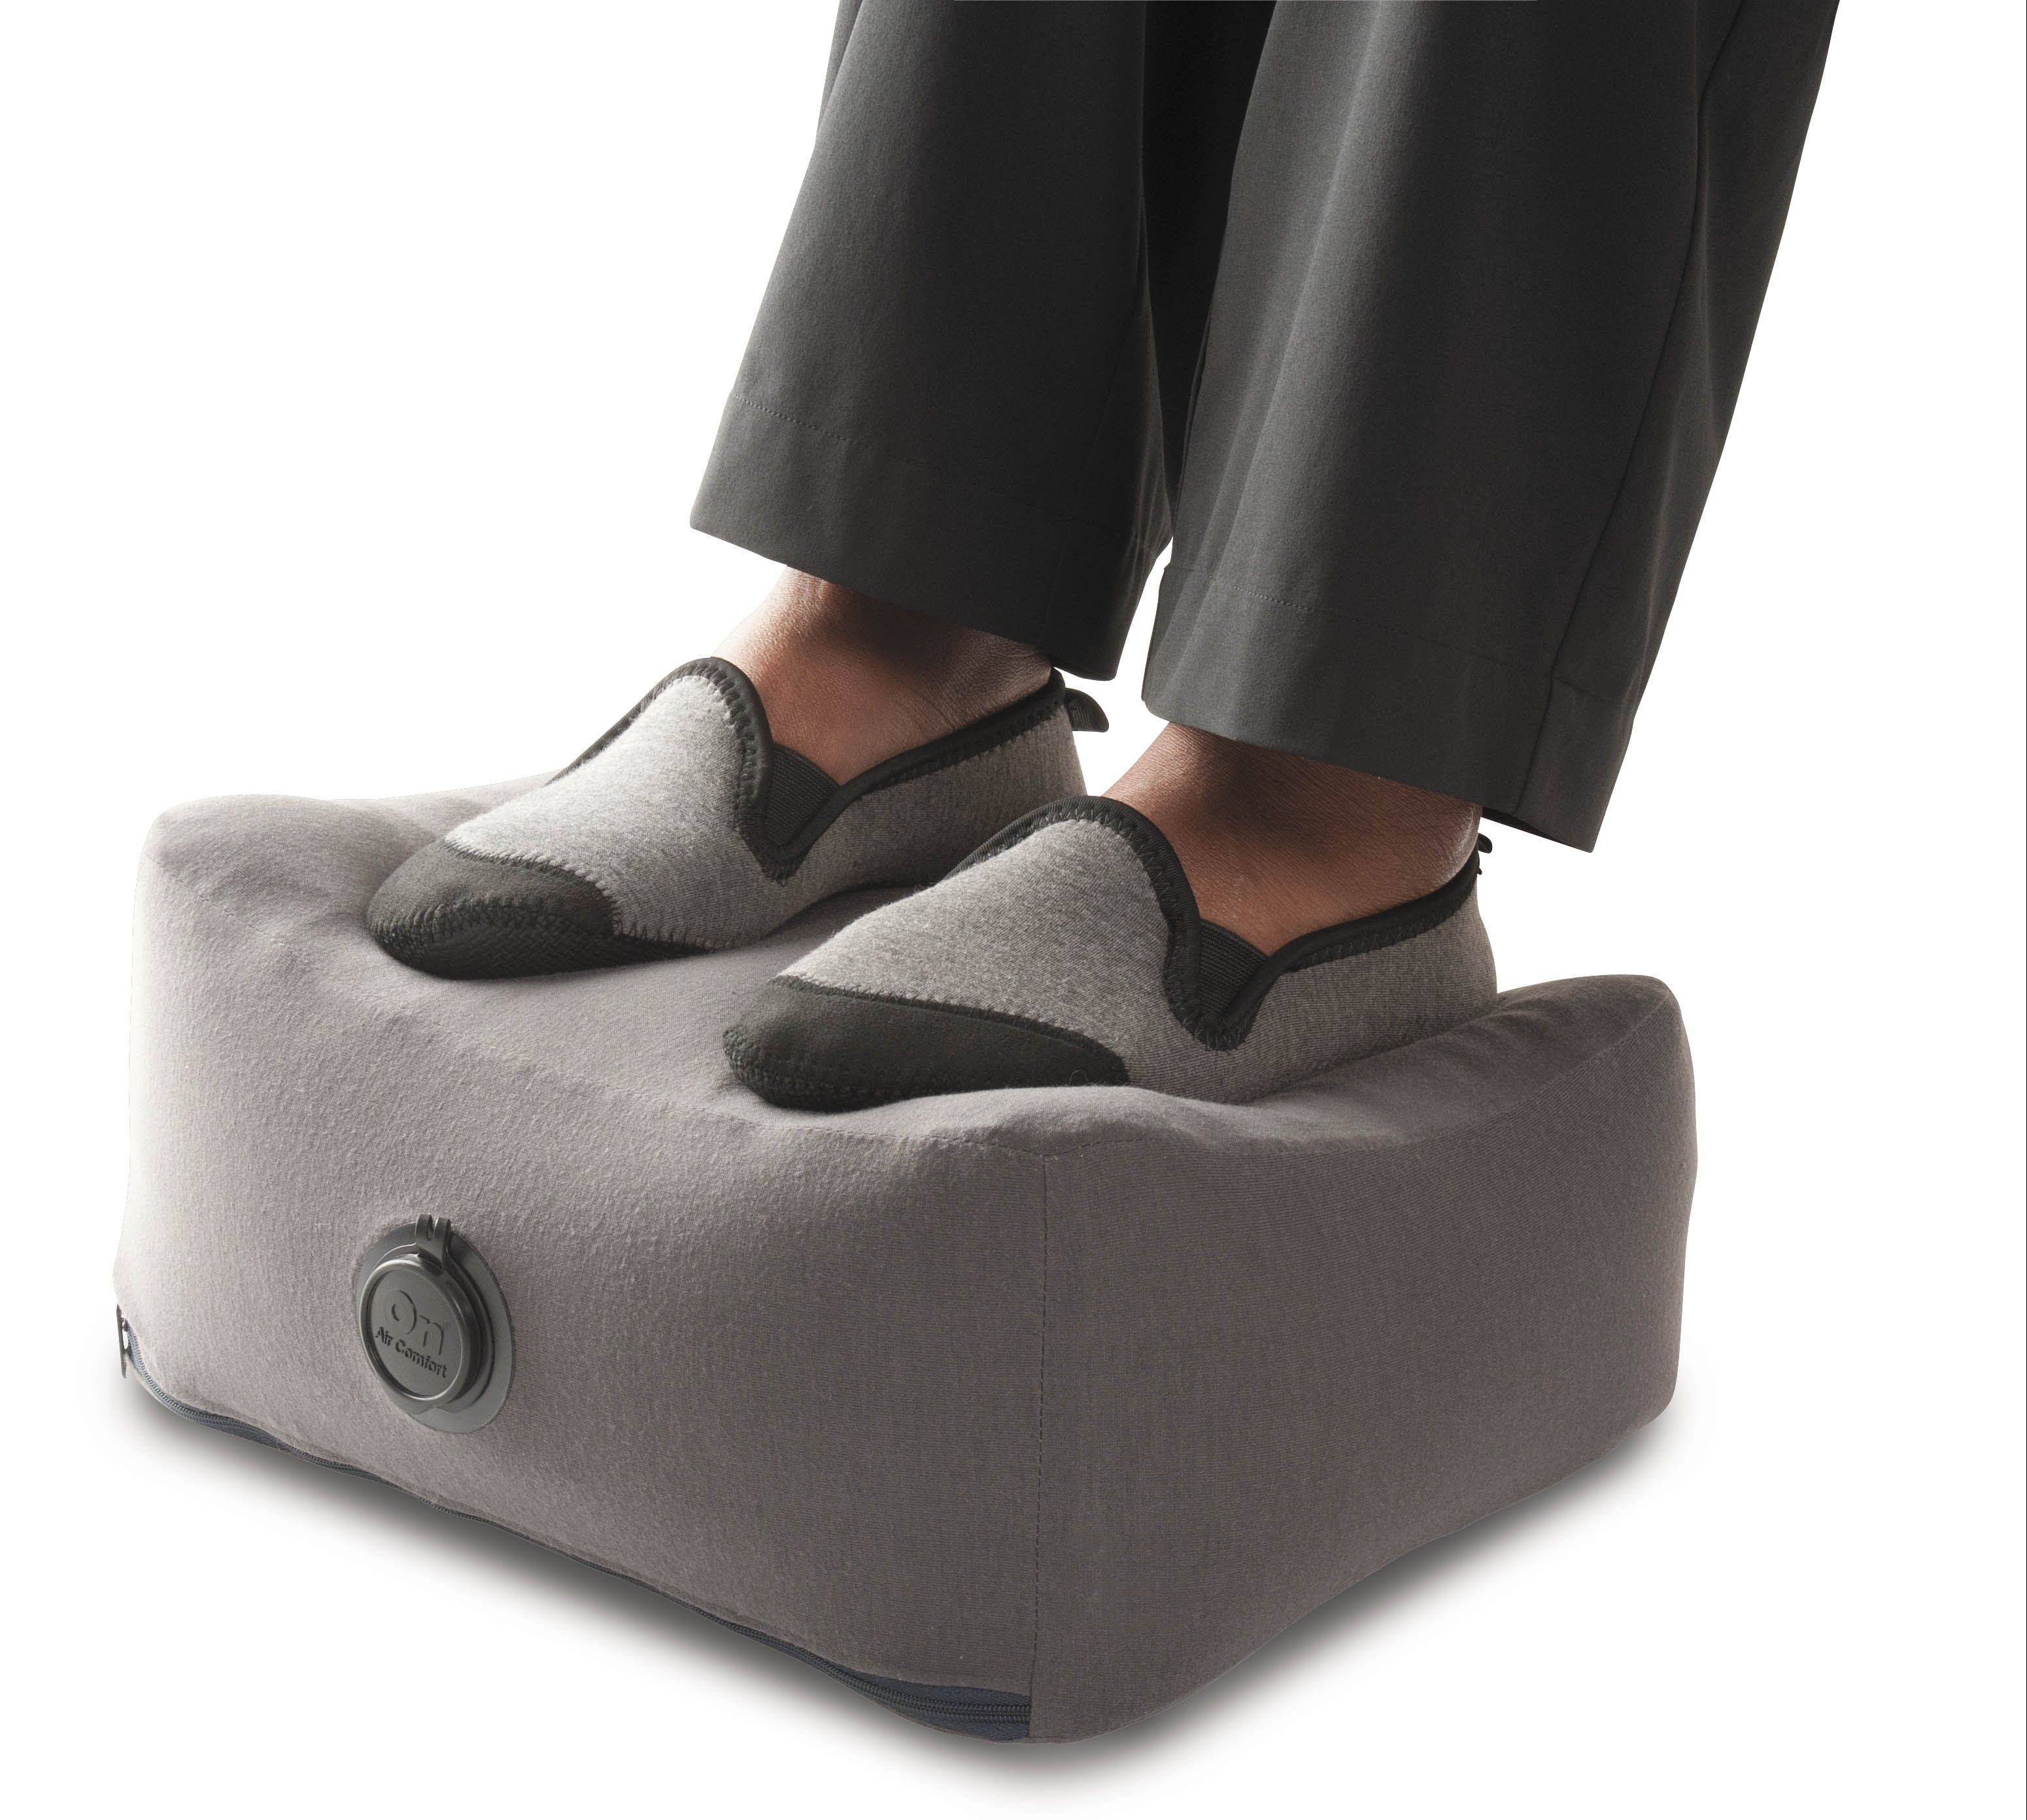 An inflatable footrest is popular among air travelers. Magellans also sells a style of footrest made from lightweight hard plastic that folds flat.